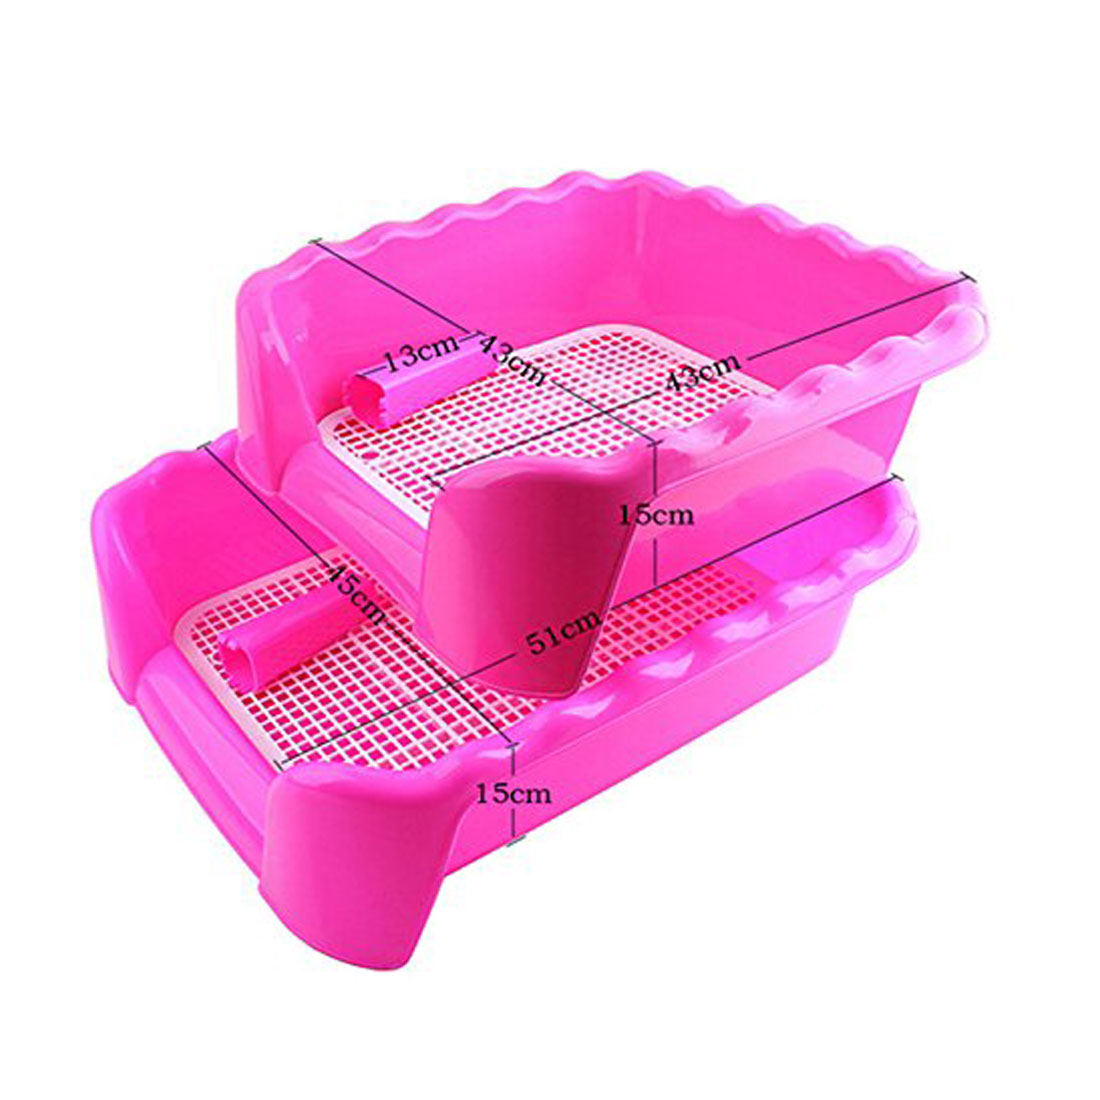 Portable Puppy Training Tray with Fence for Pet Dogs and Cats Potty and Pee Training Indoor 9